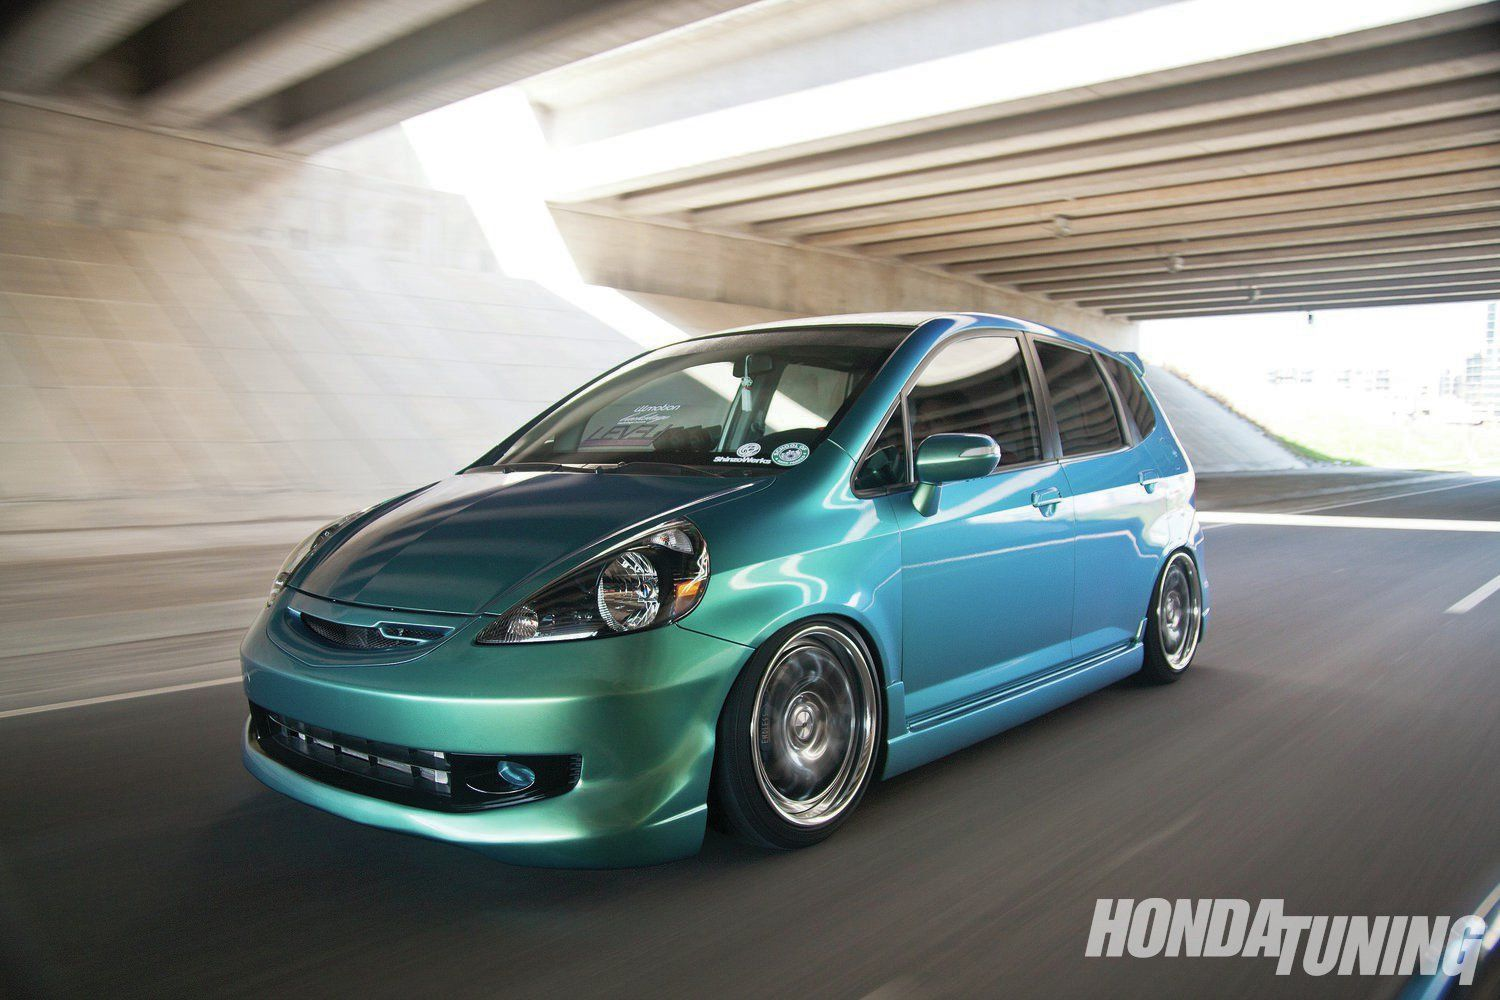 Honda tuning Fit Gd on SSR rims and KenStyle Bodykit